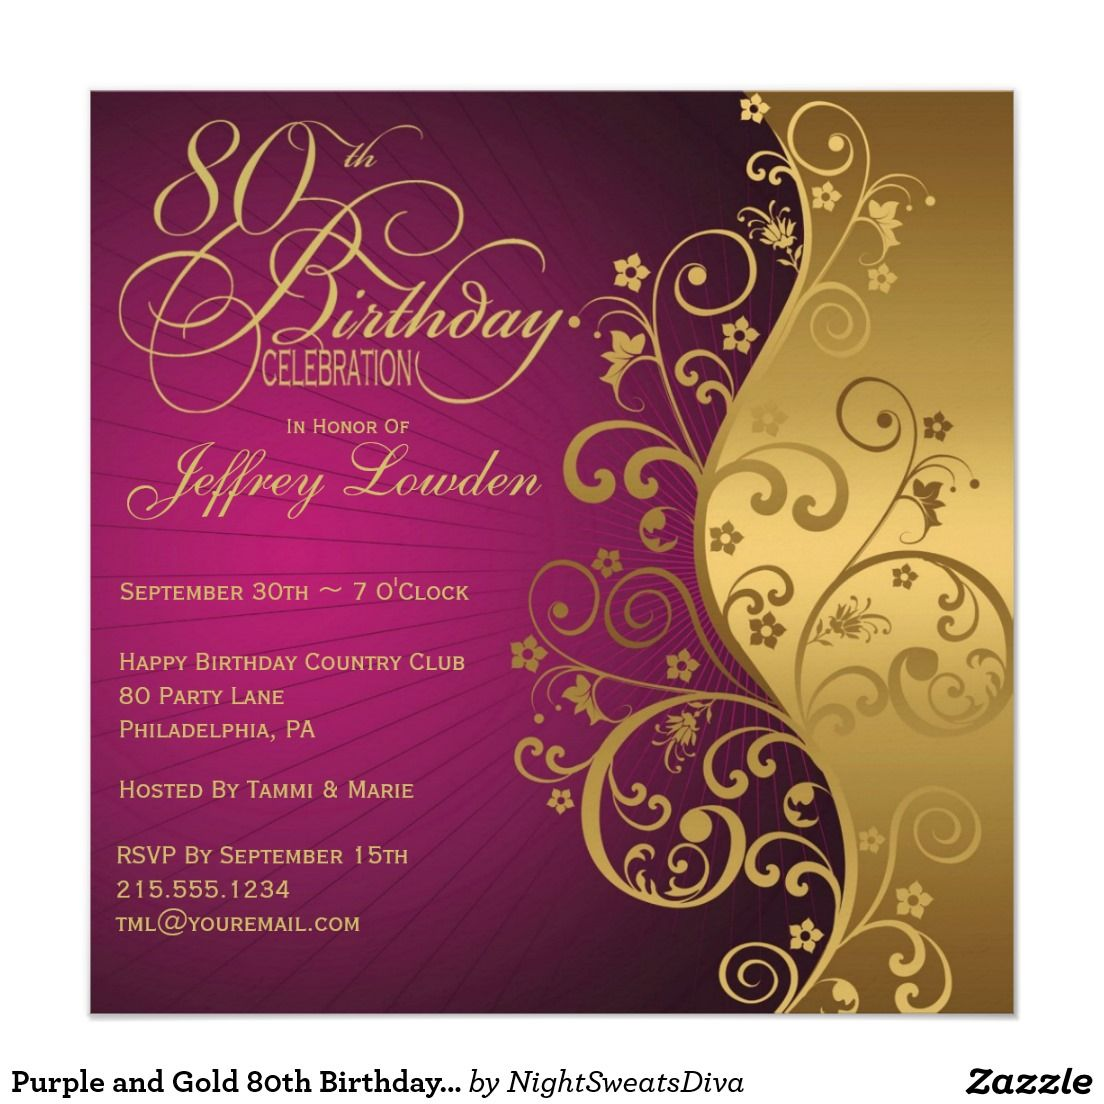 red u0026 gold birthday party invitation today price drop and special promotion get the best buydiscount deals red u0026 gold birthday party invitation lowest